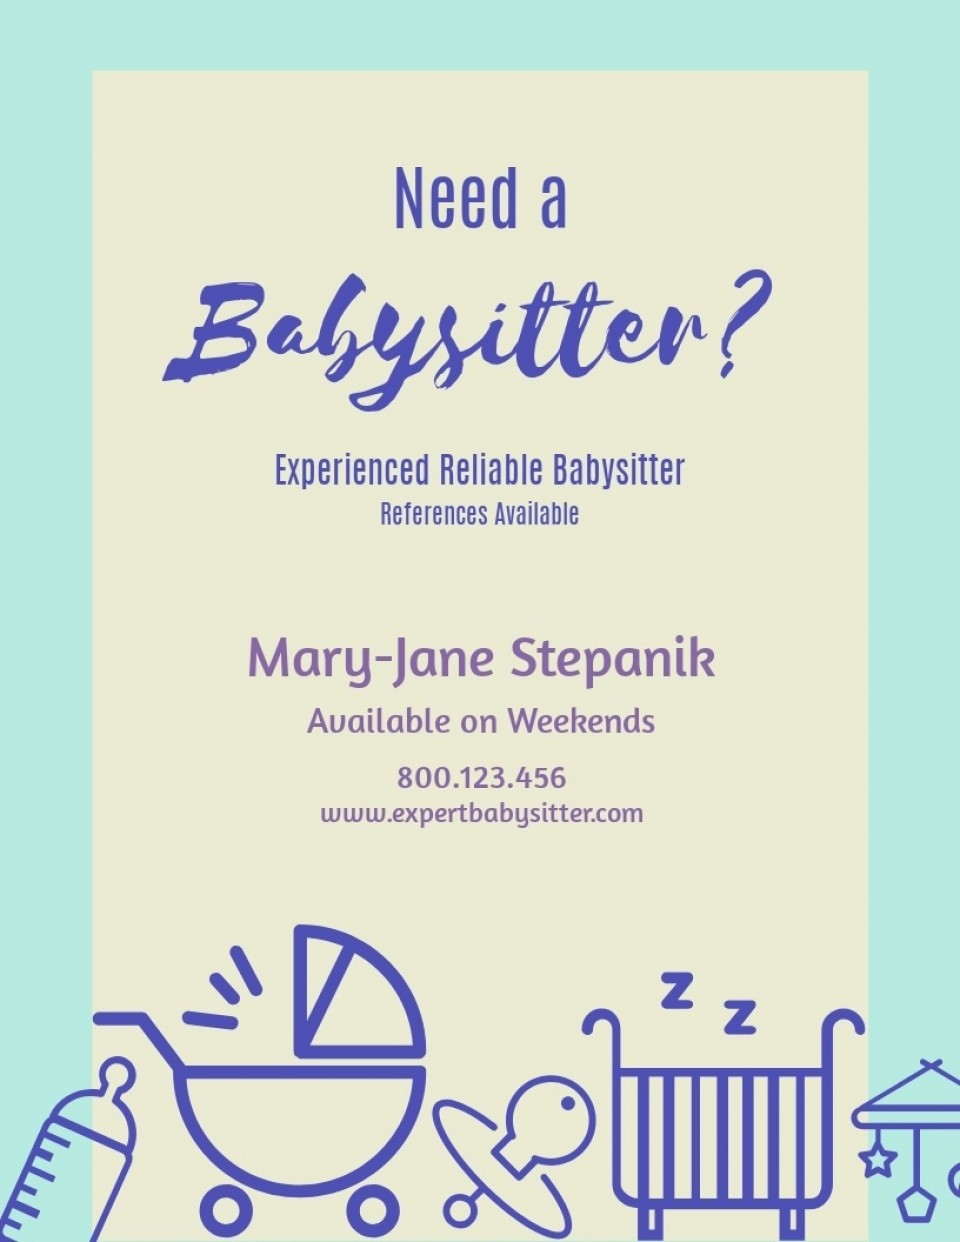 Need Free Babysitting Flyer Template  Online960